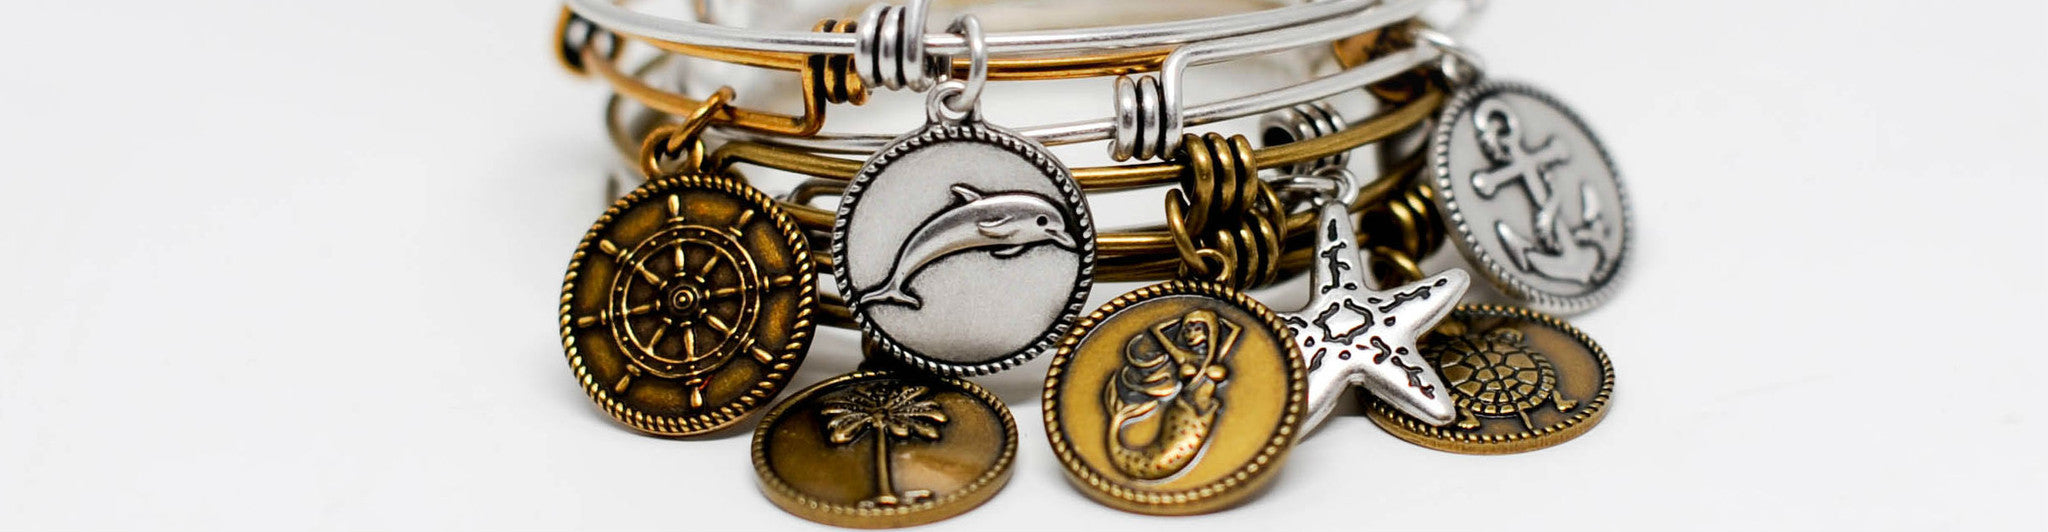 Seaside Expandable Bangle Charm Bracelets